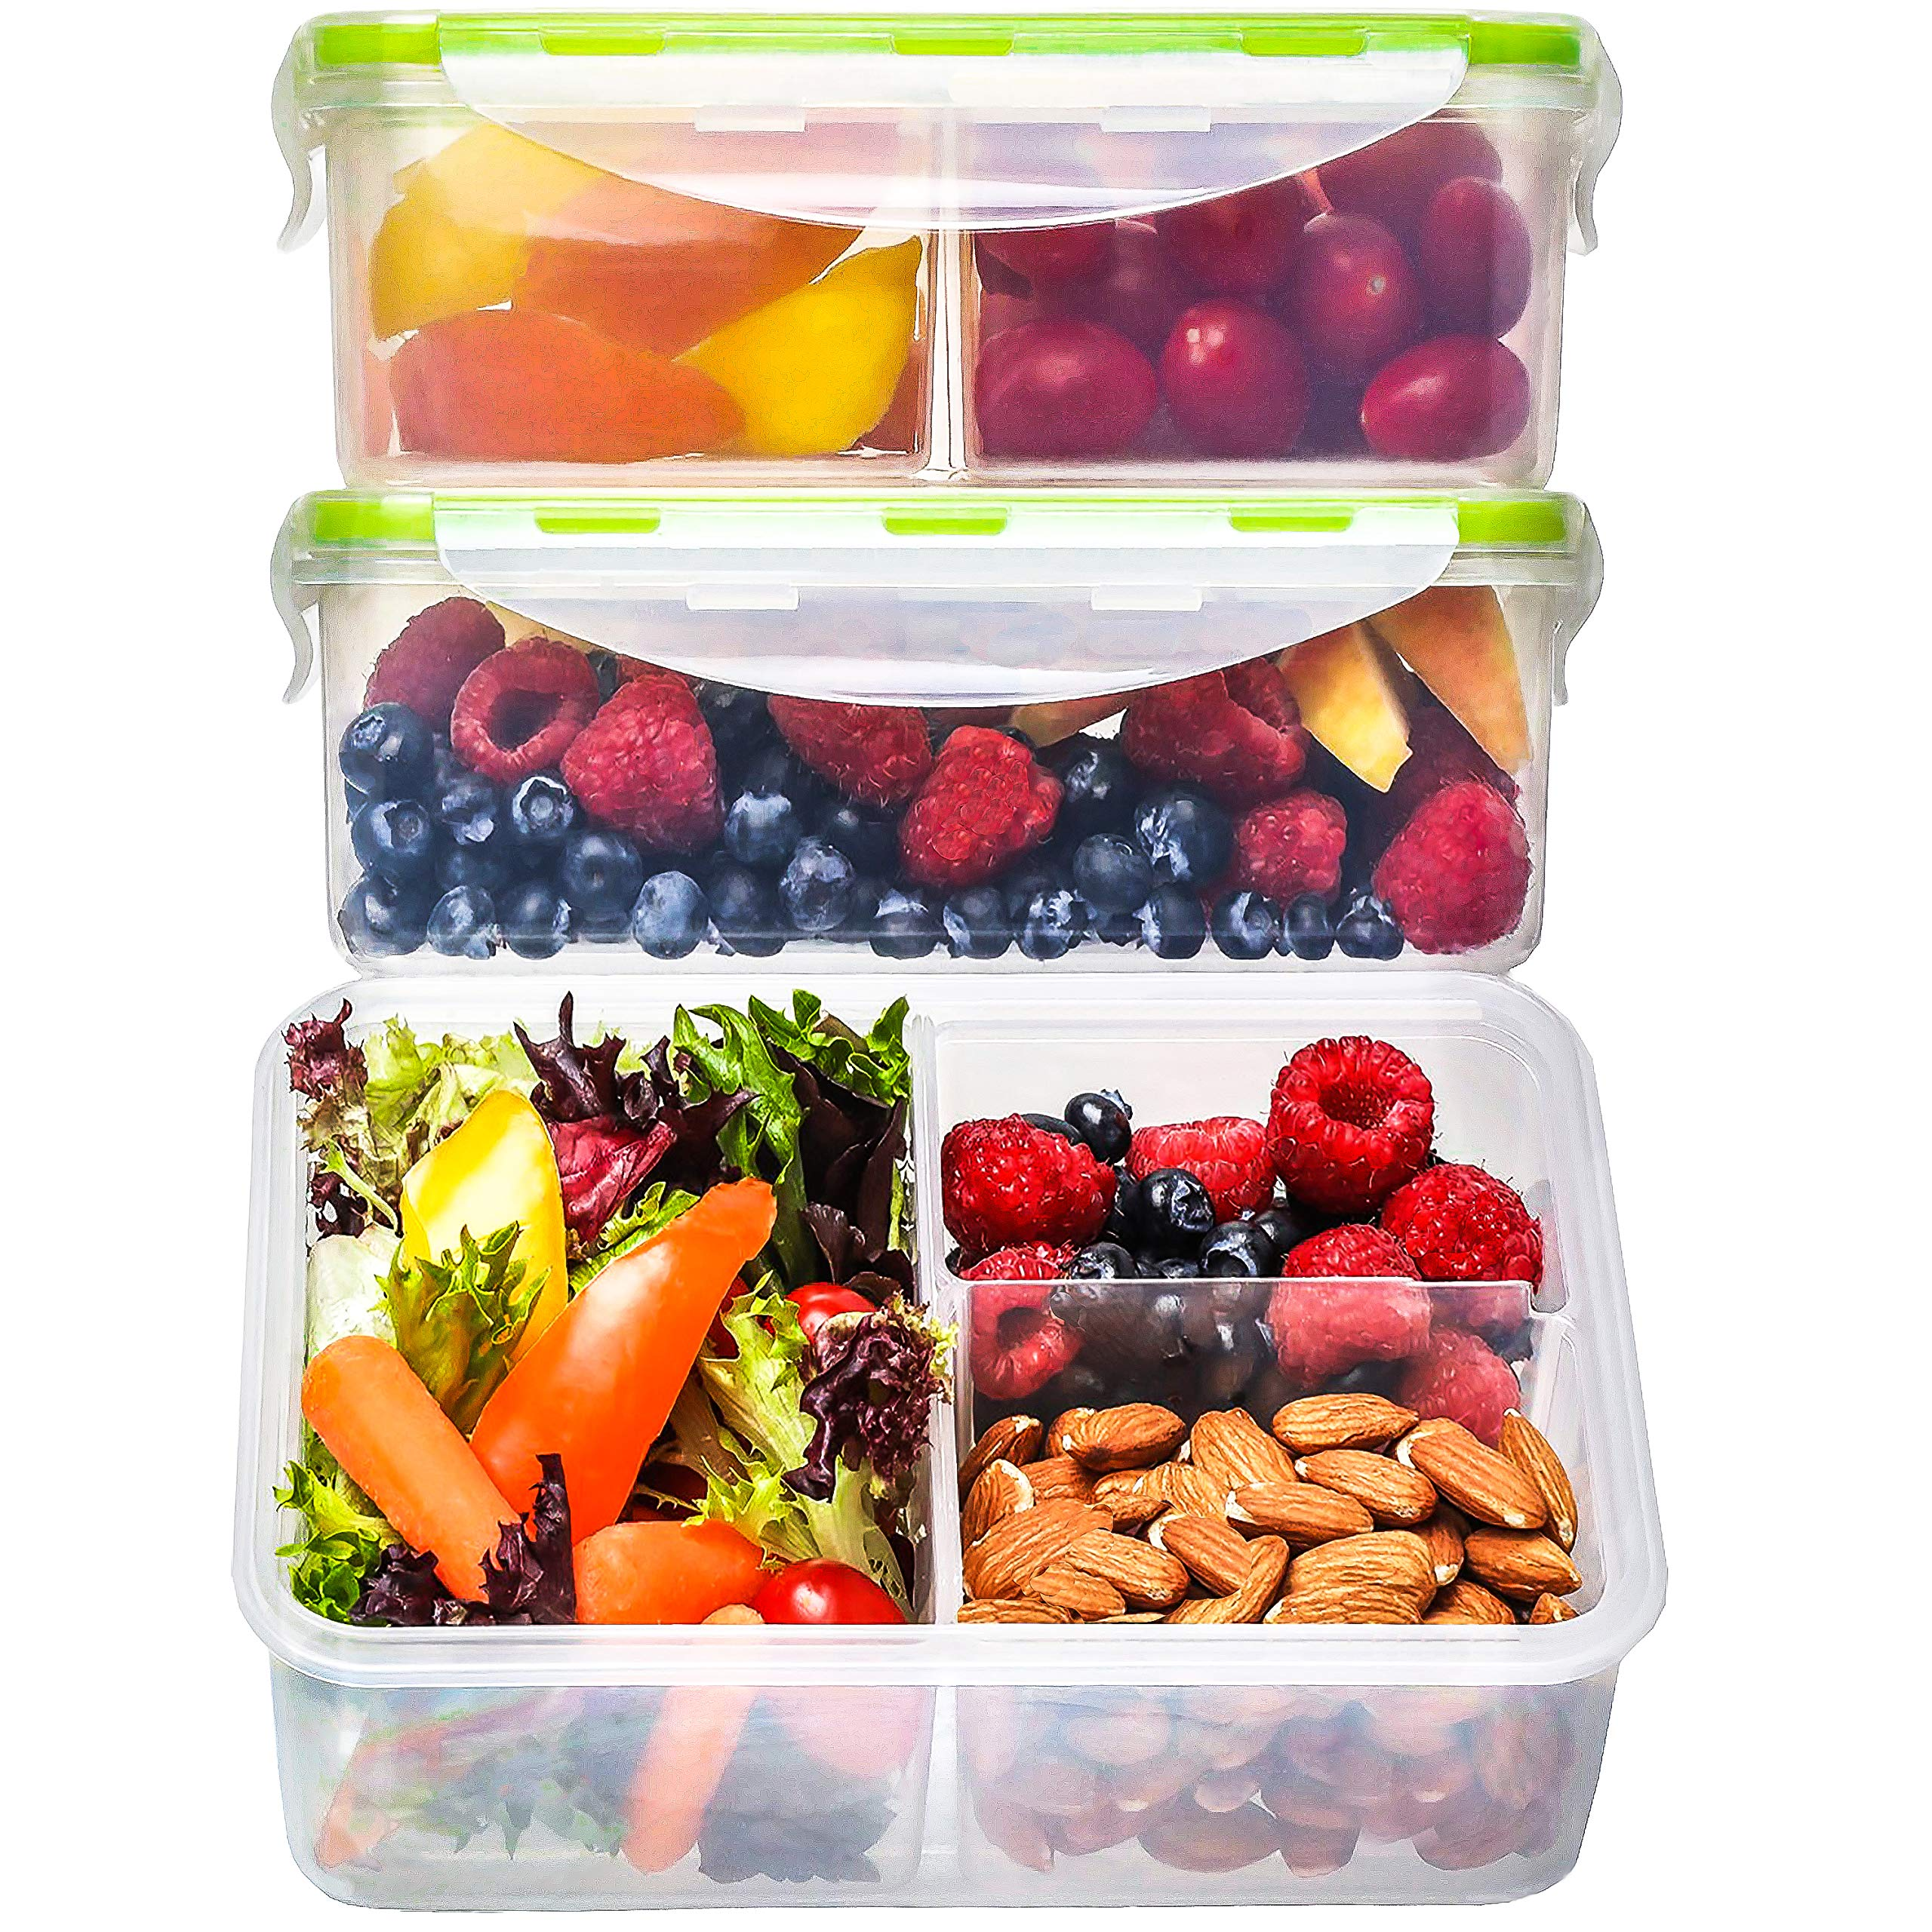 Bento Box Lunch Containers [3, 38 Oz] - Boxes for Adults, 3 Compartment Food with Lids, Containers, Kids, Amazon.com: